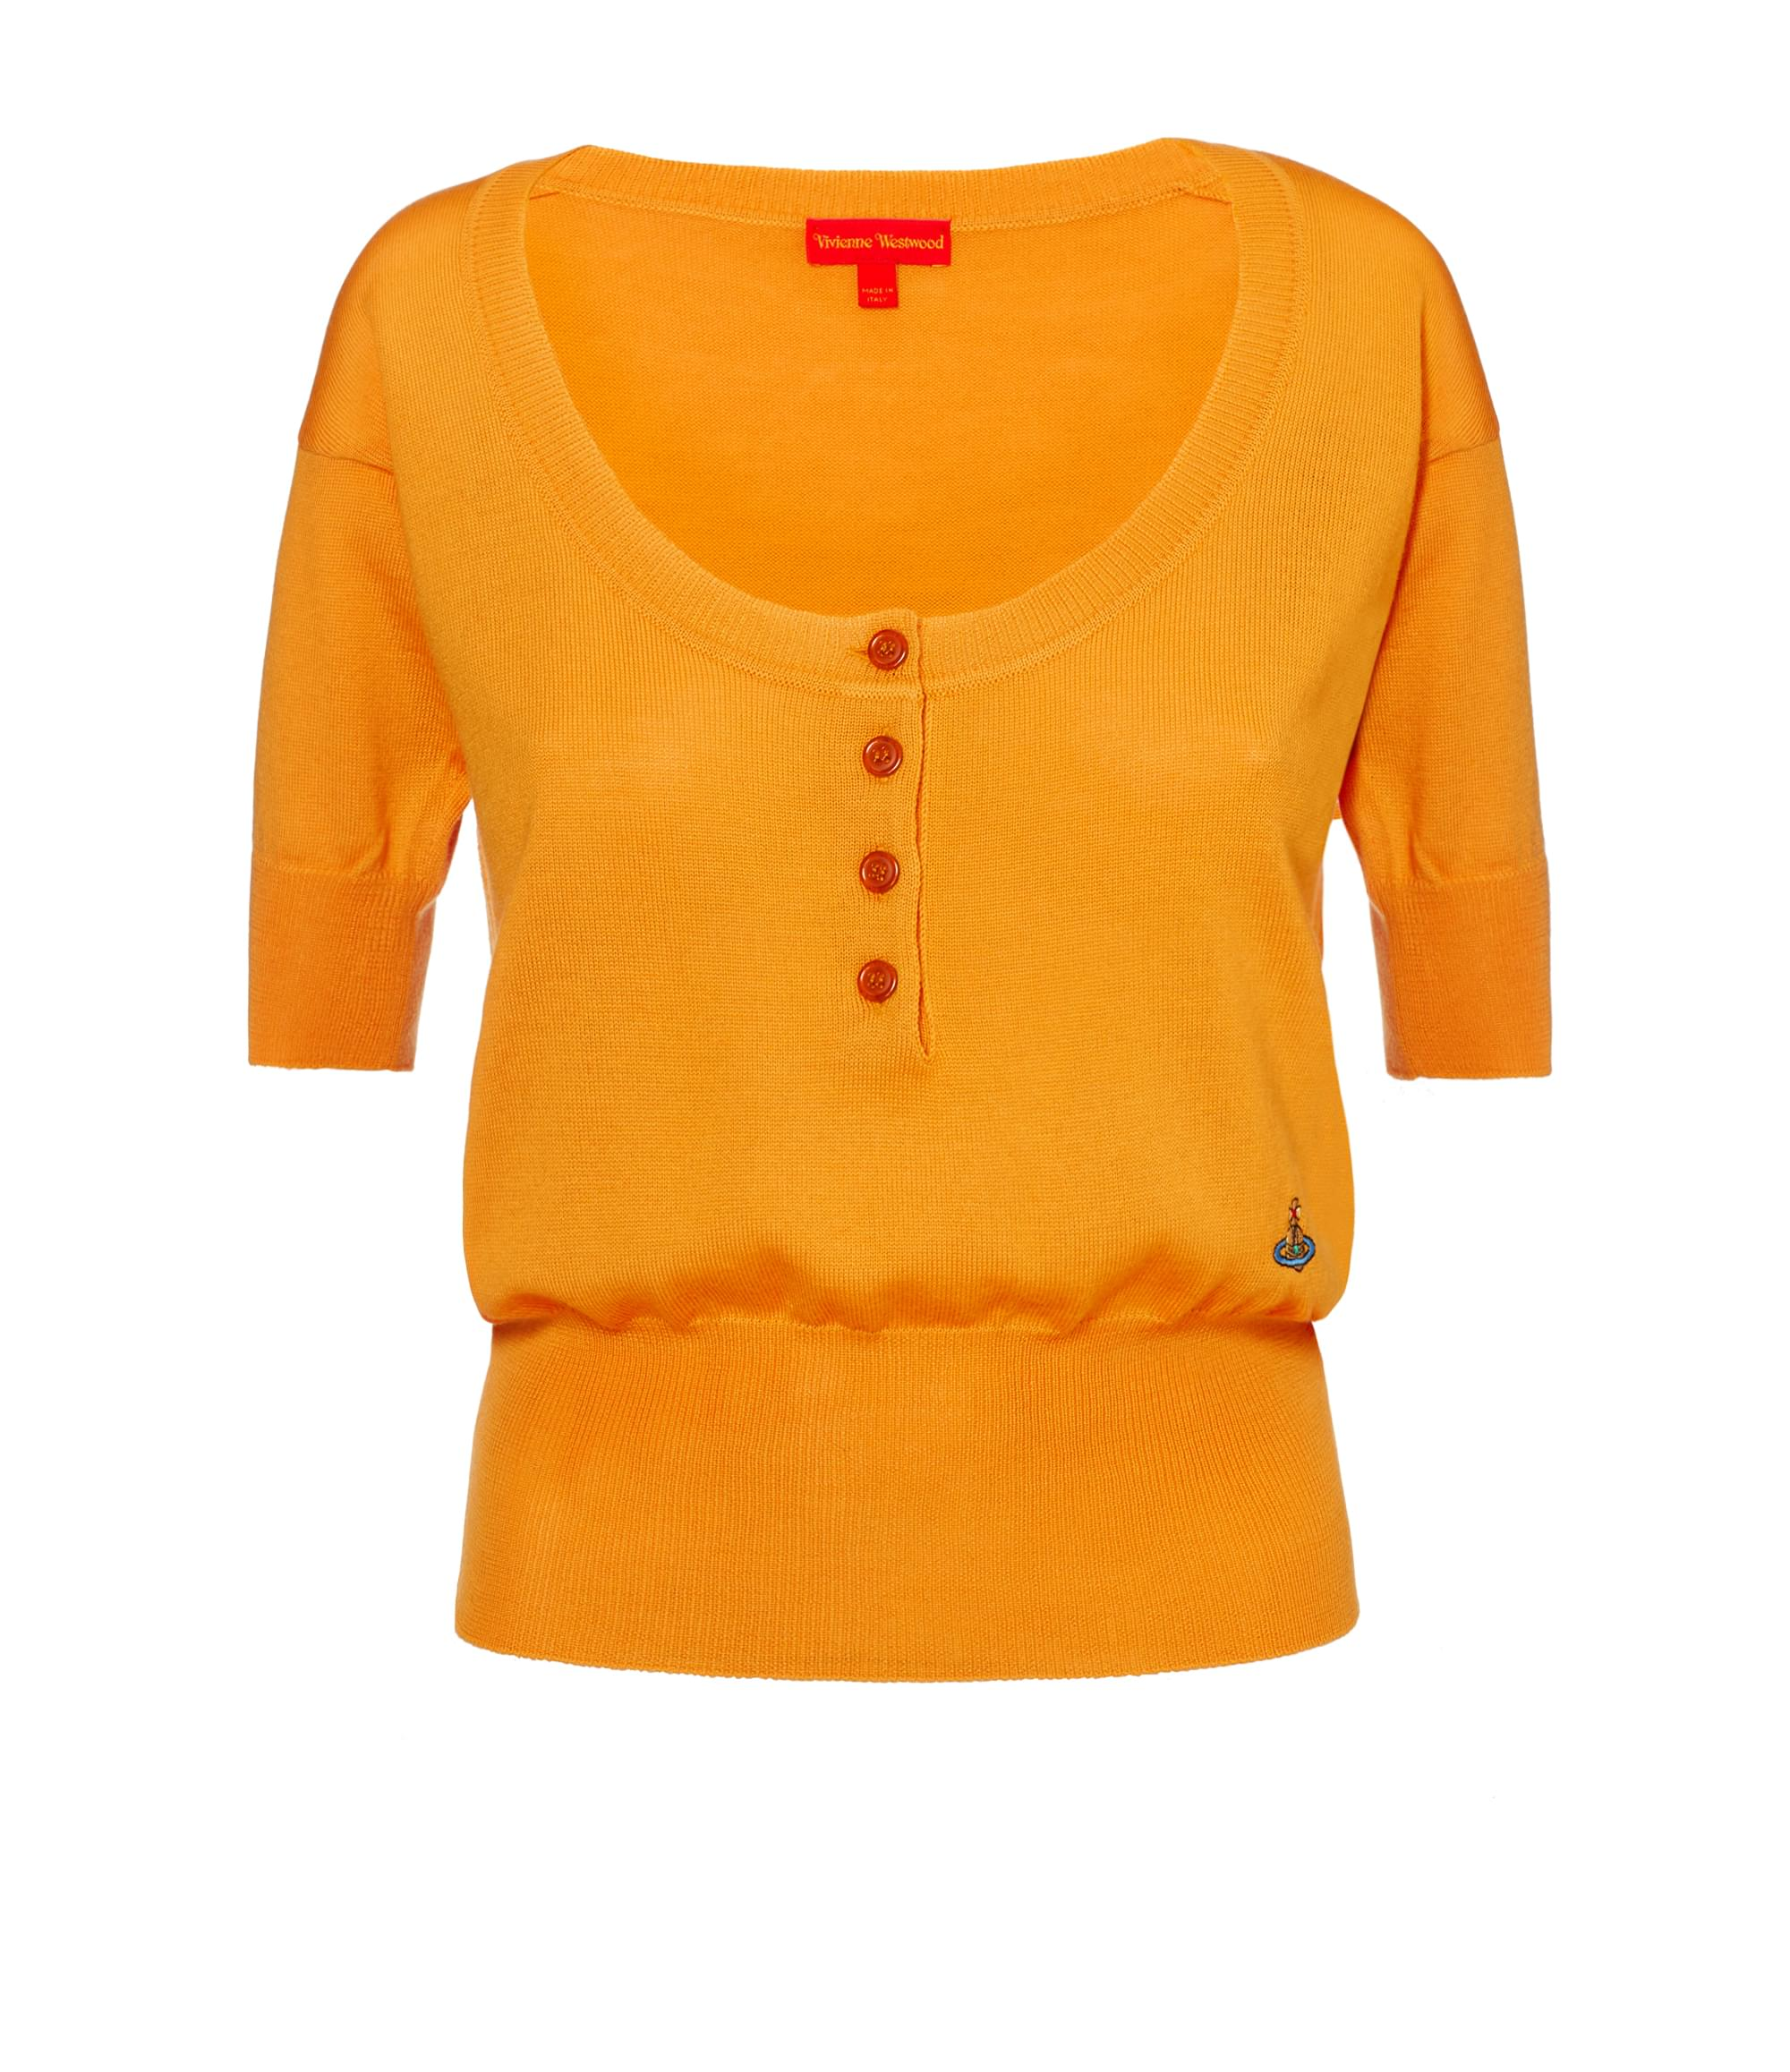 Vivienne Westwood Yellow La Lollo Polo